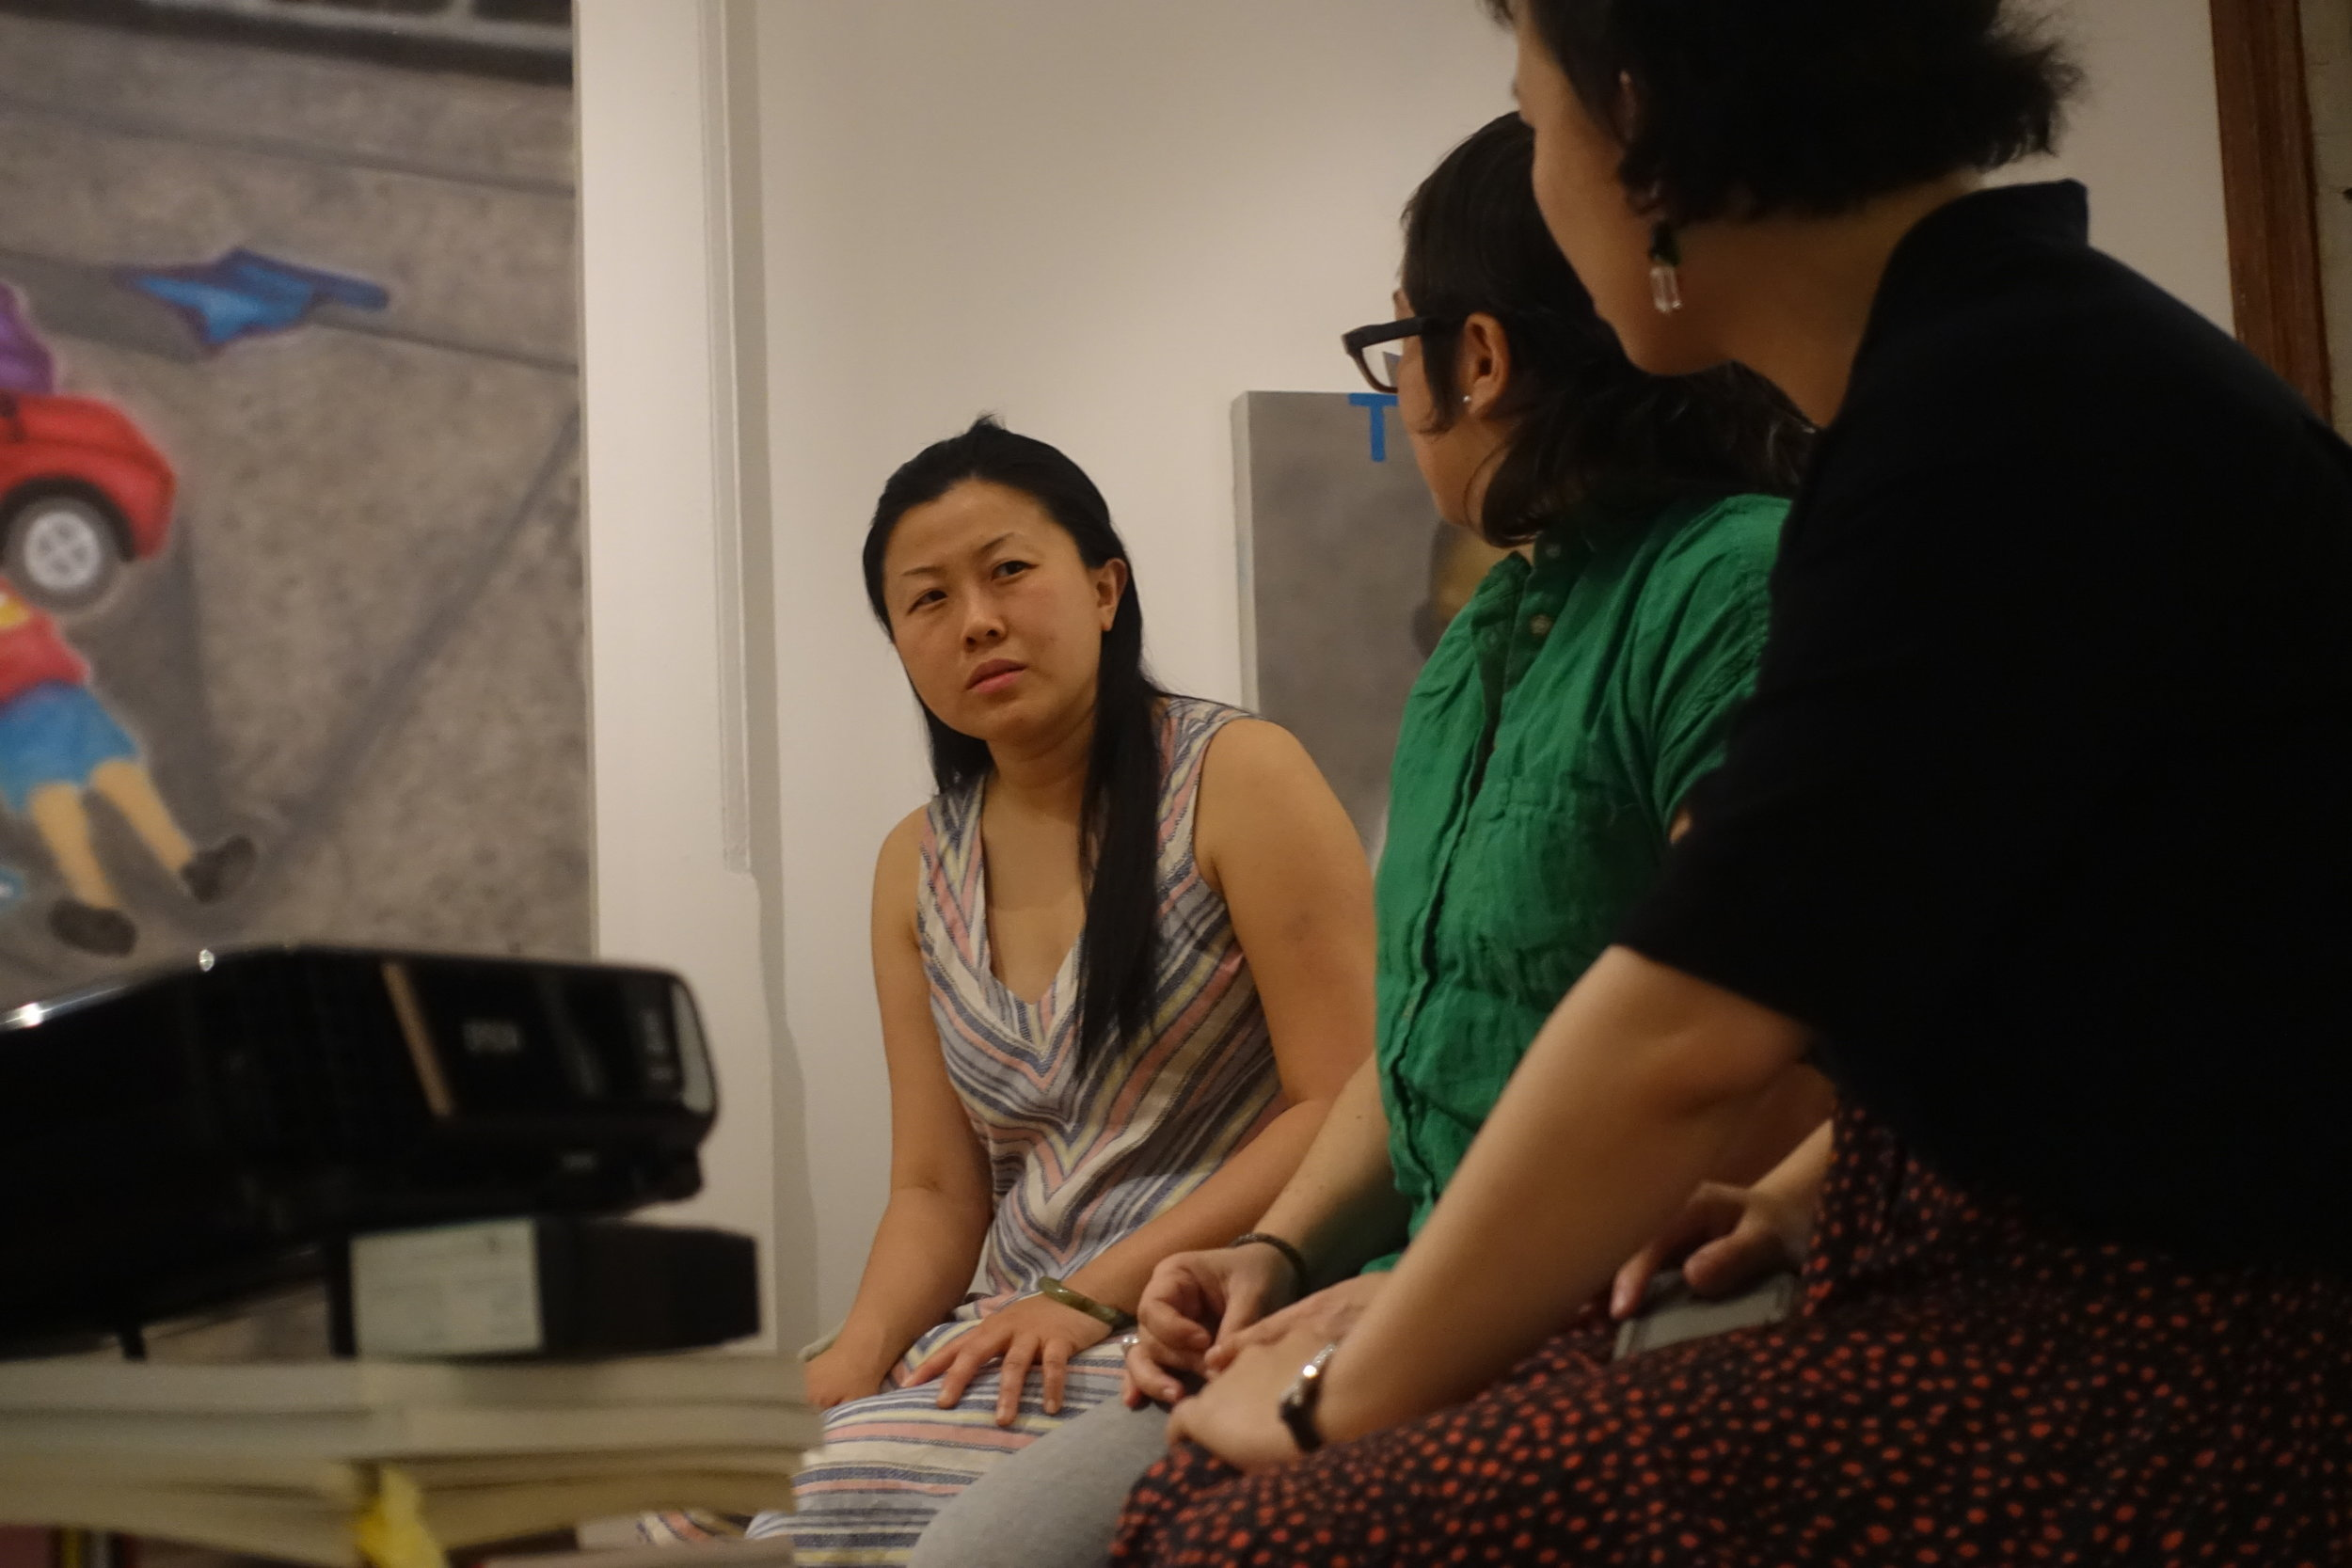 Stories of Space : Independent Short Films Night, photograph by Yilan Wang, courtesy Fou Gallery.